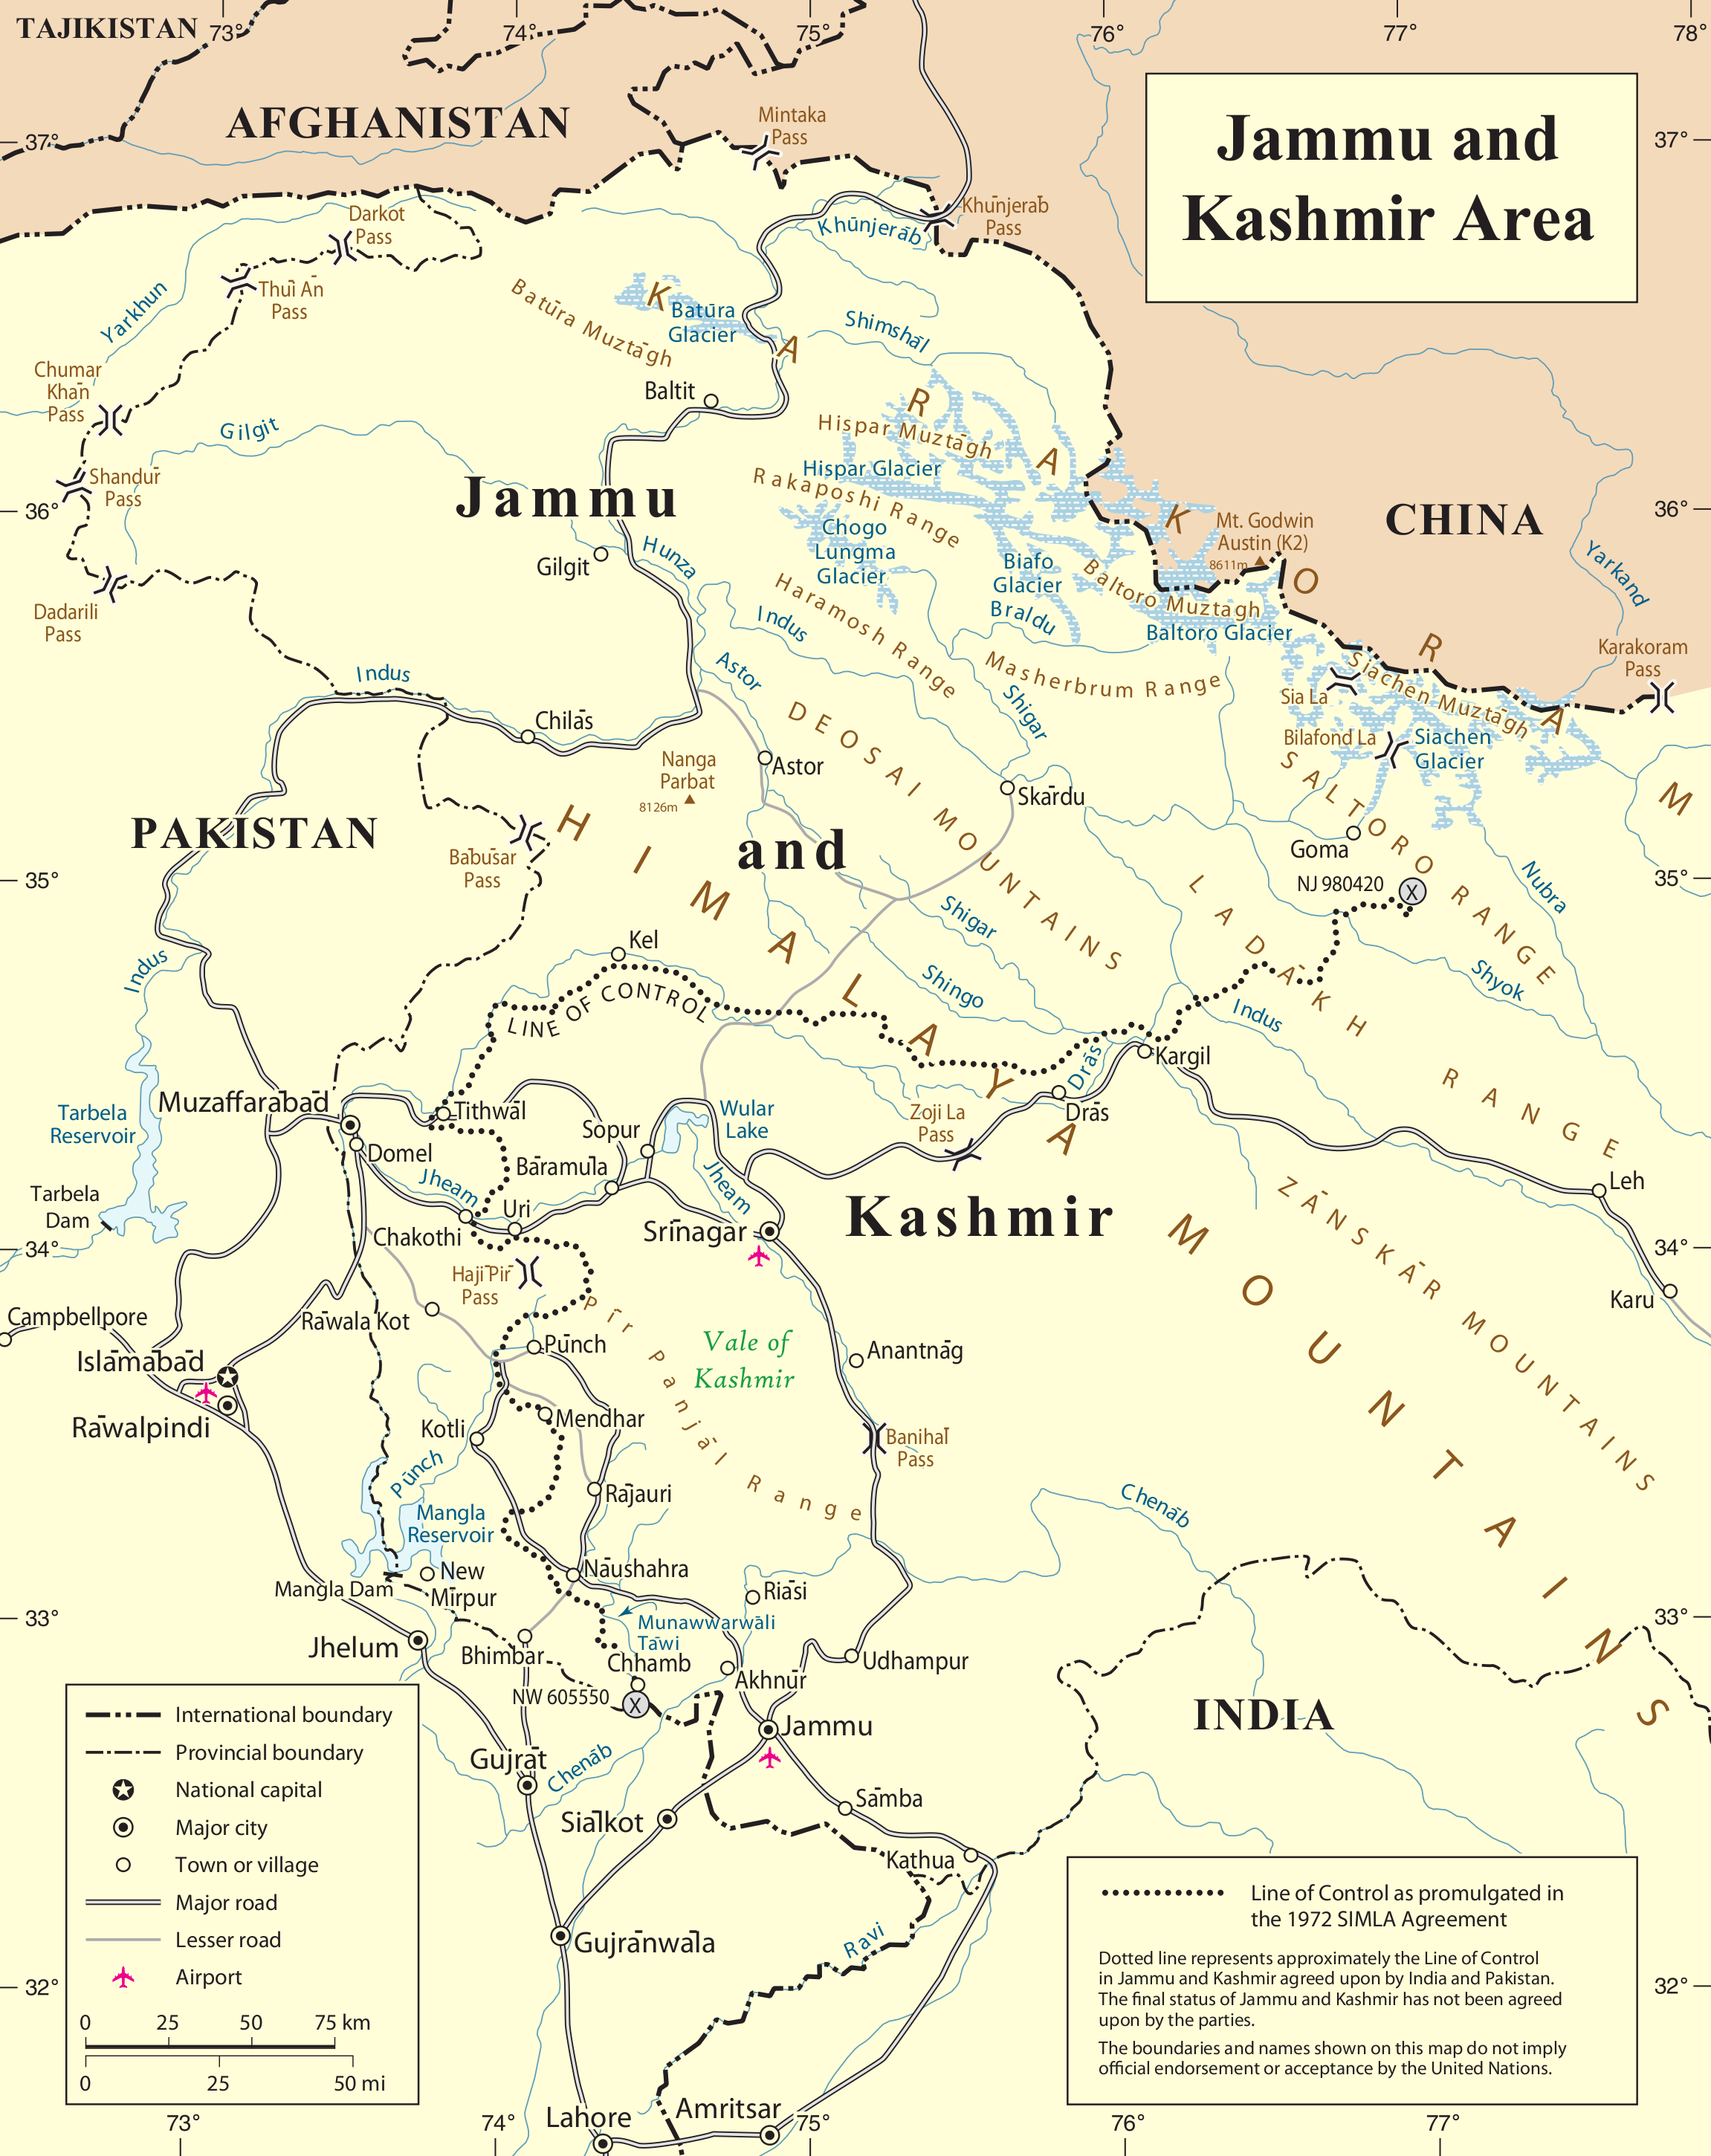 A United Nations Map of the current situation in the state of Jammu and Kashmir